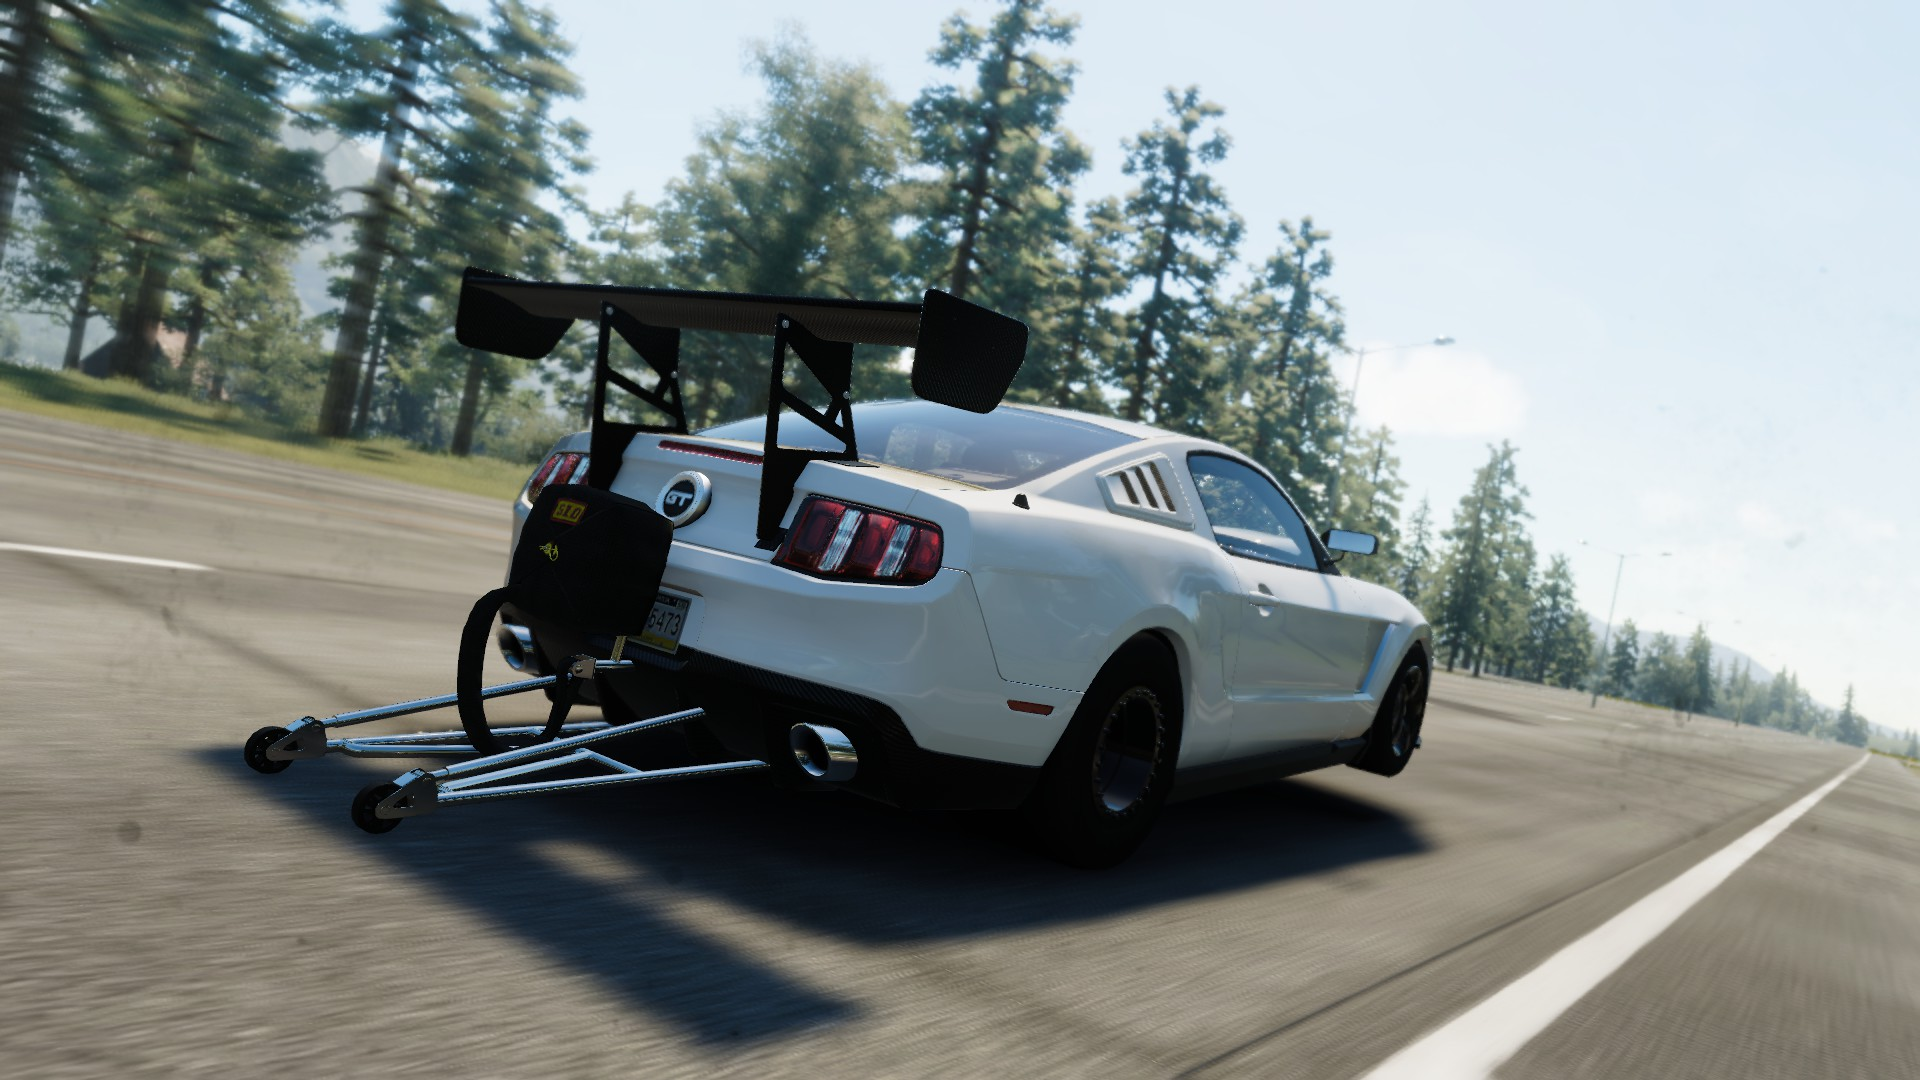 Image - Ford Mustang DRAG.jpg   THE CREW Wiki   FANDOM powered by ...